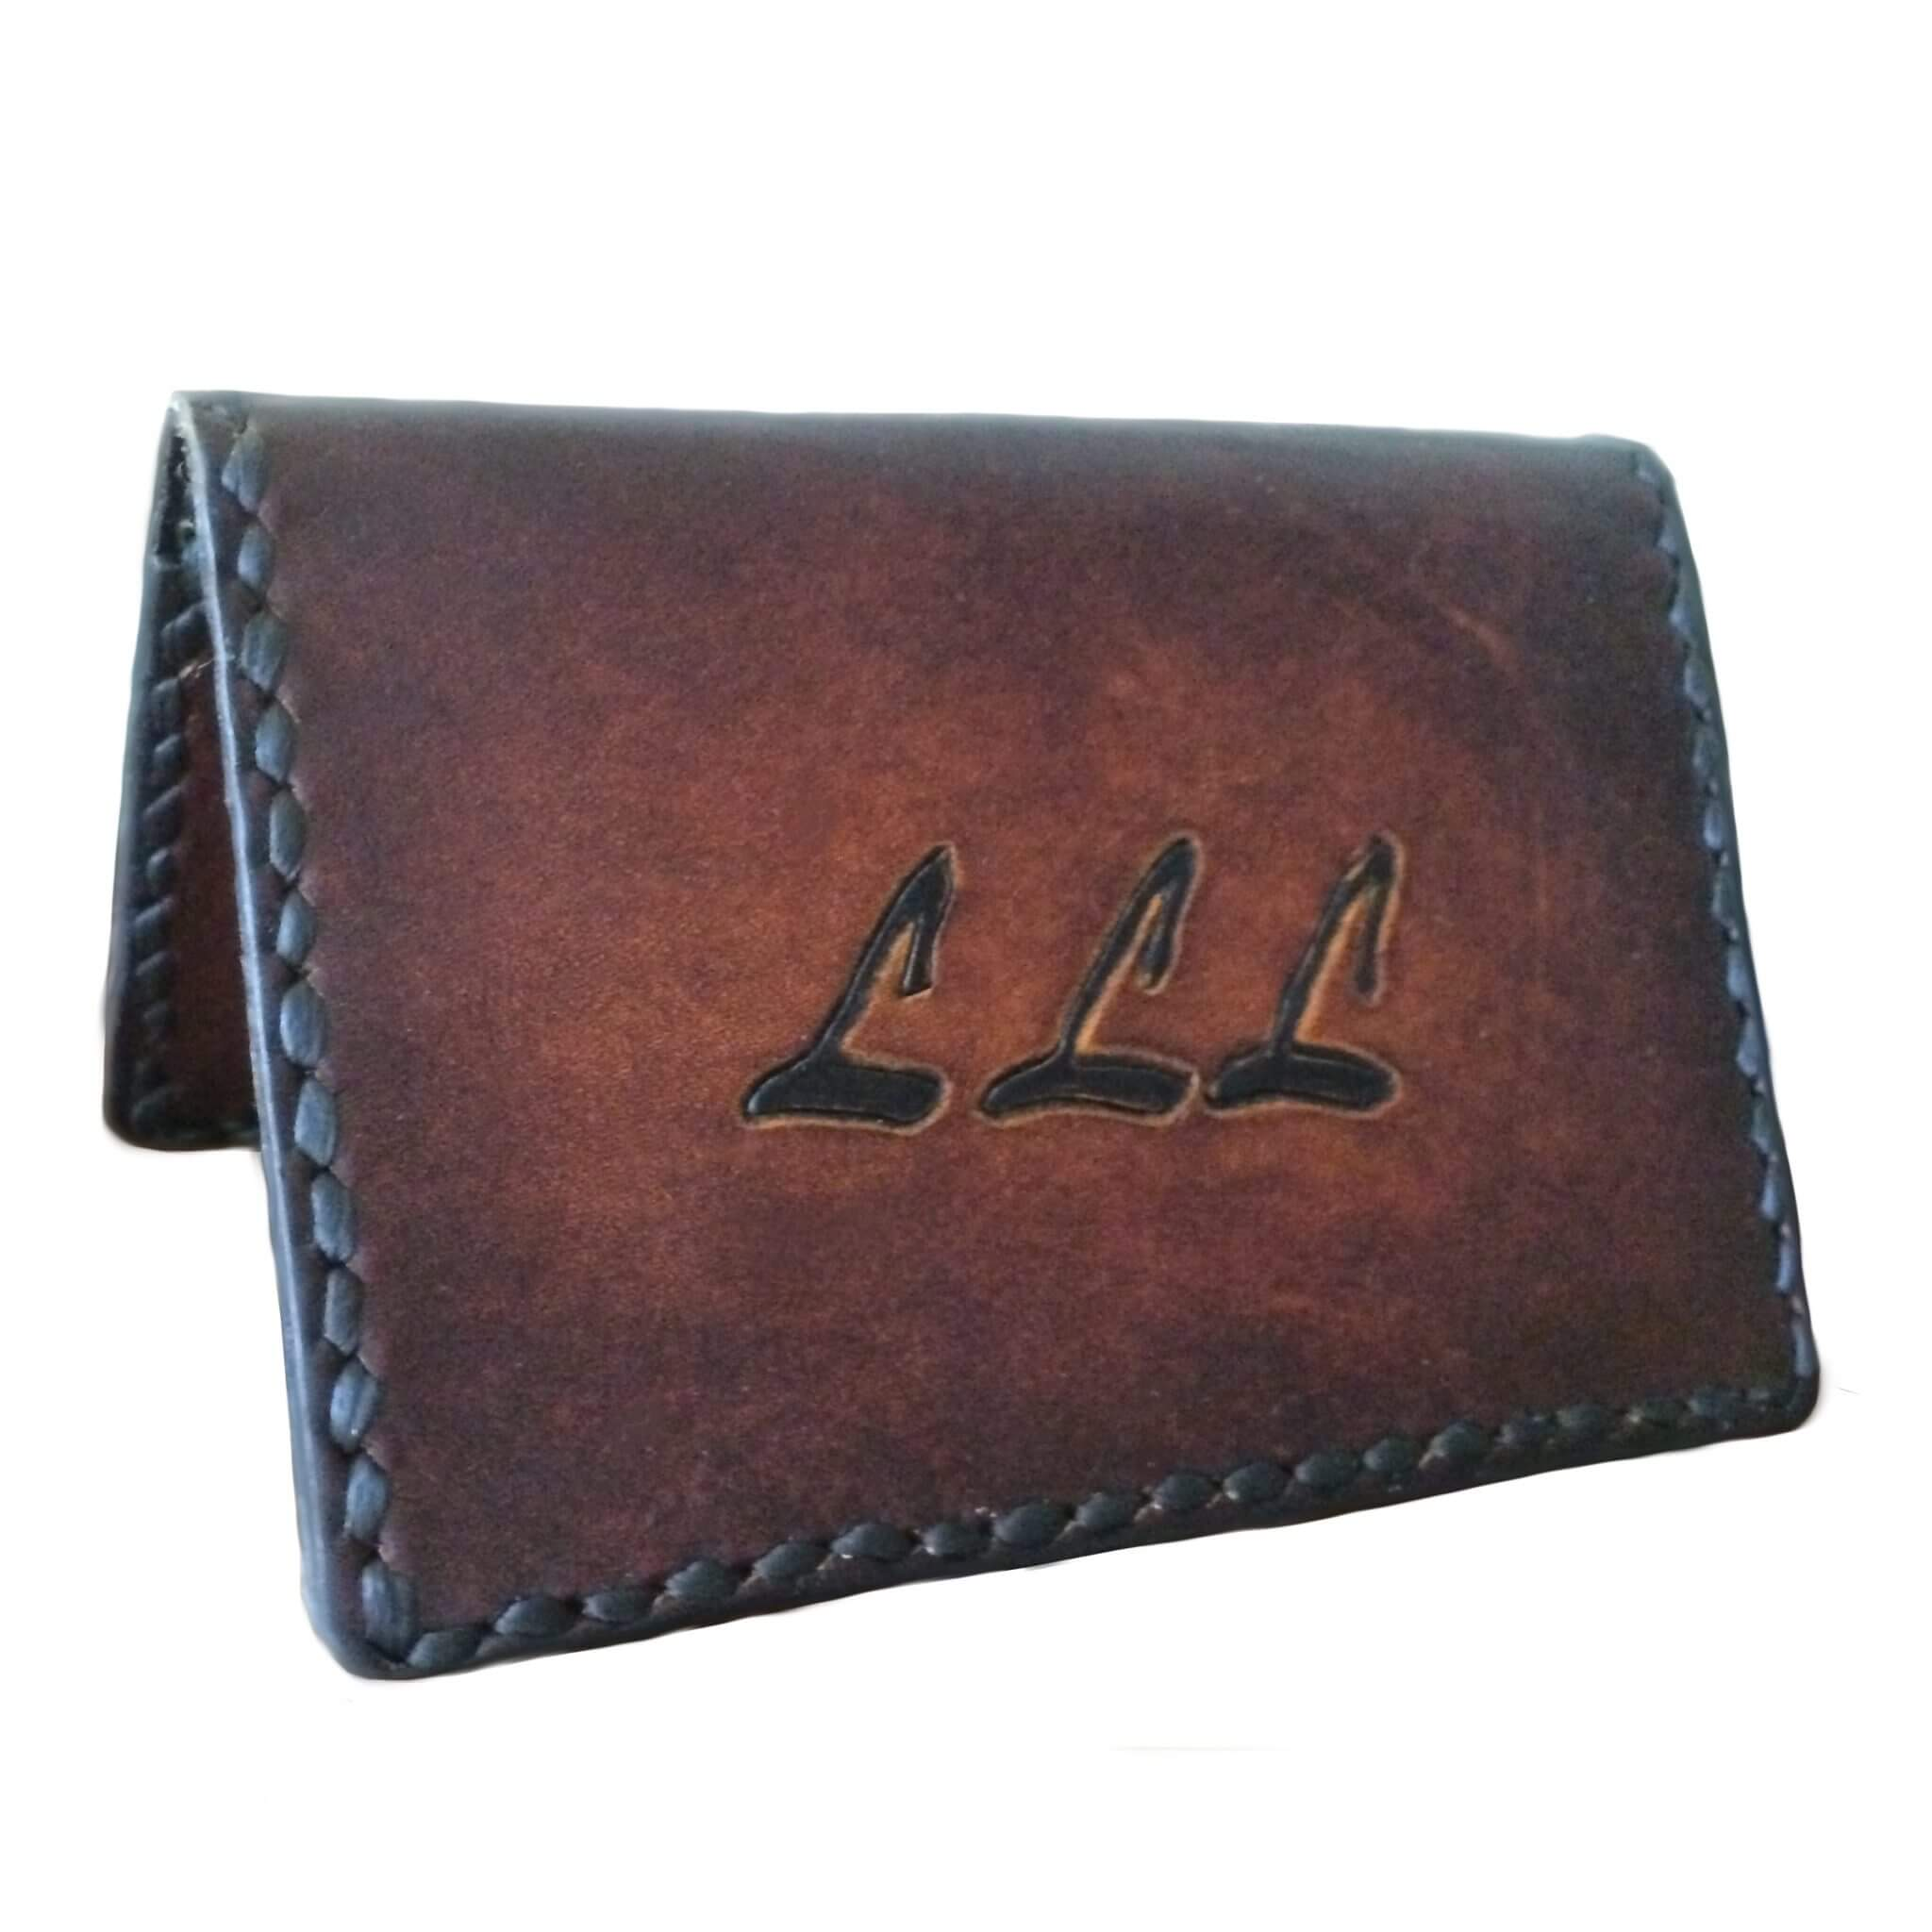 Card Case with Initials - Card Case